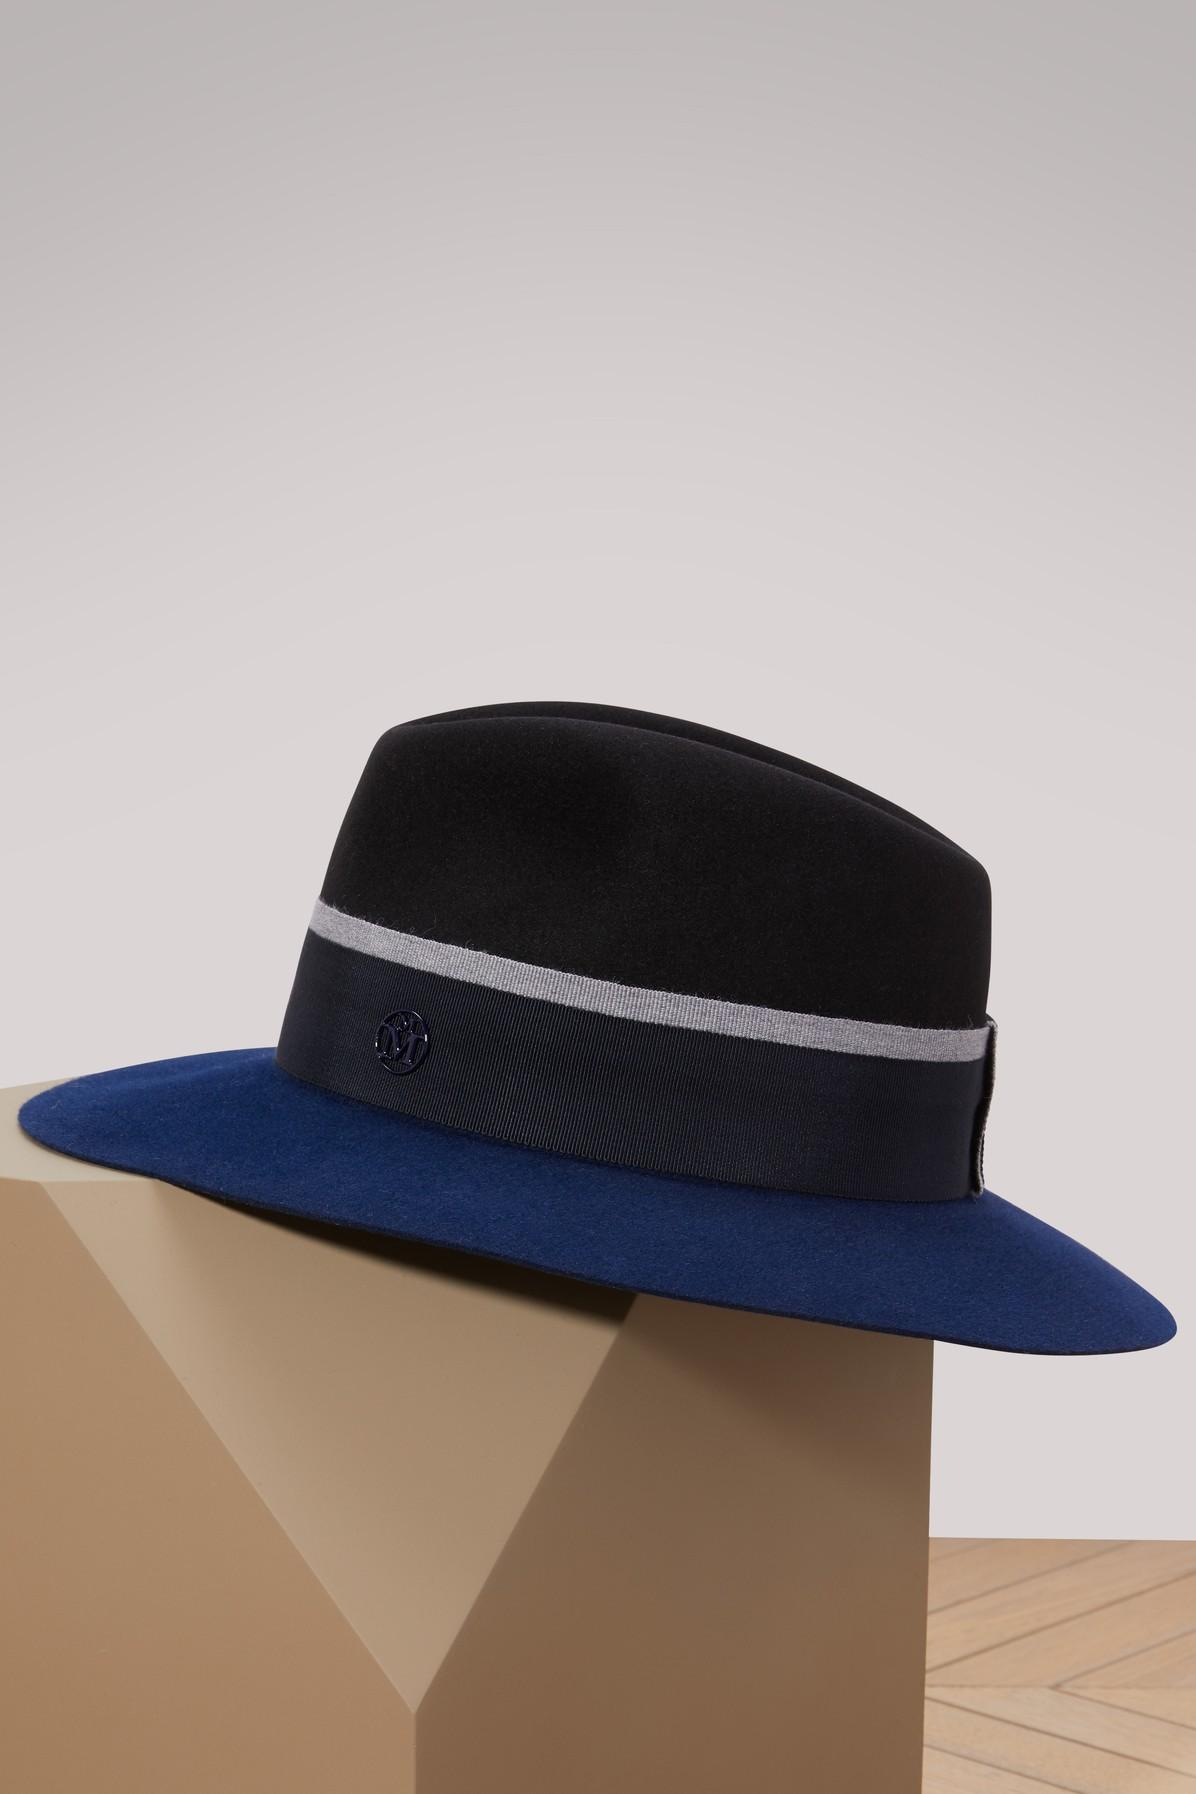 Maison Michel Rico Fedora In Black Navy